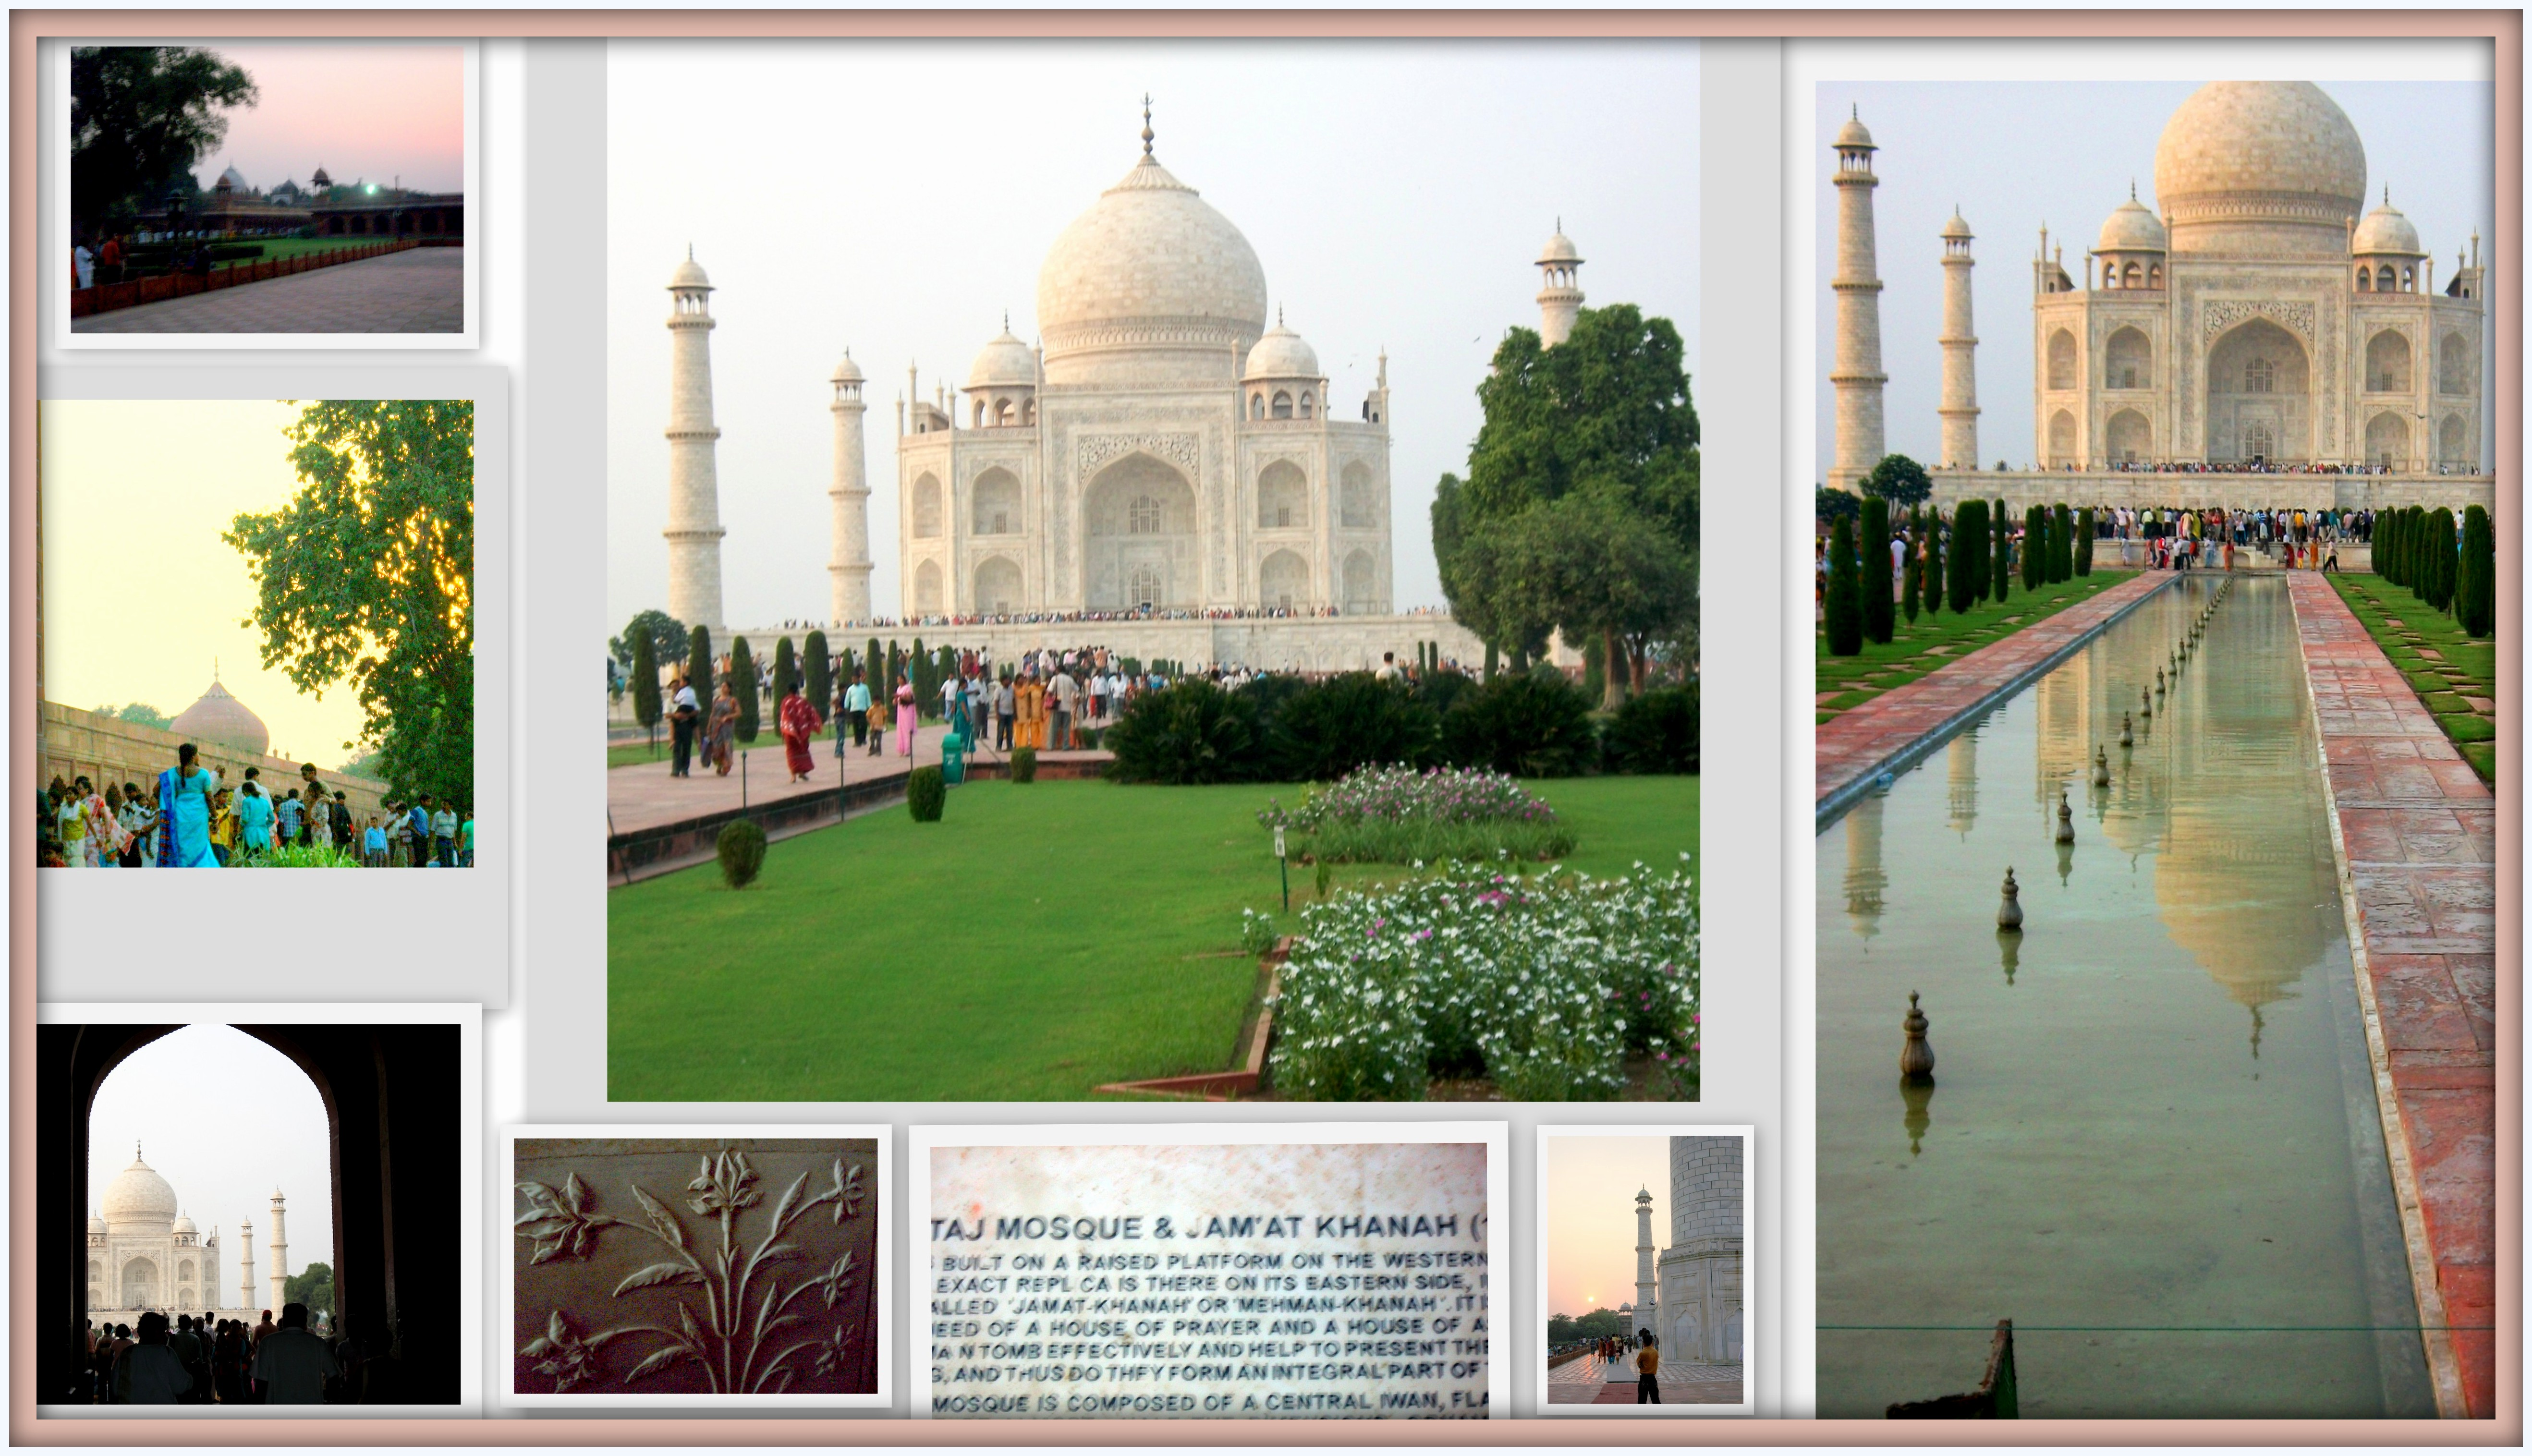 a study and history of the taj mahal The true story of the taj mahal have an chequered history the taj was perhaps desecrated and looted over who study indian history will awaken to this.